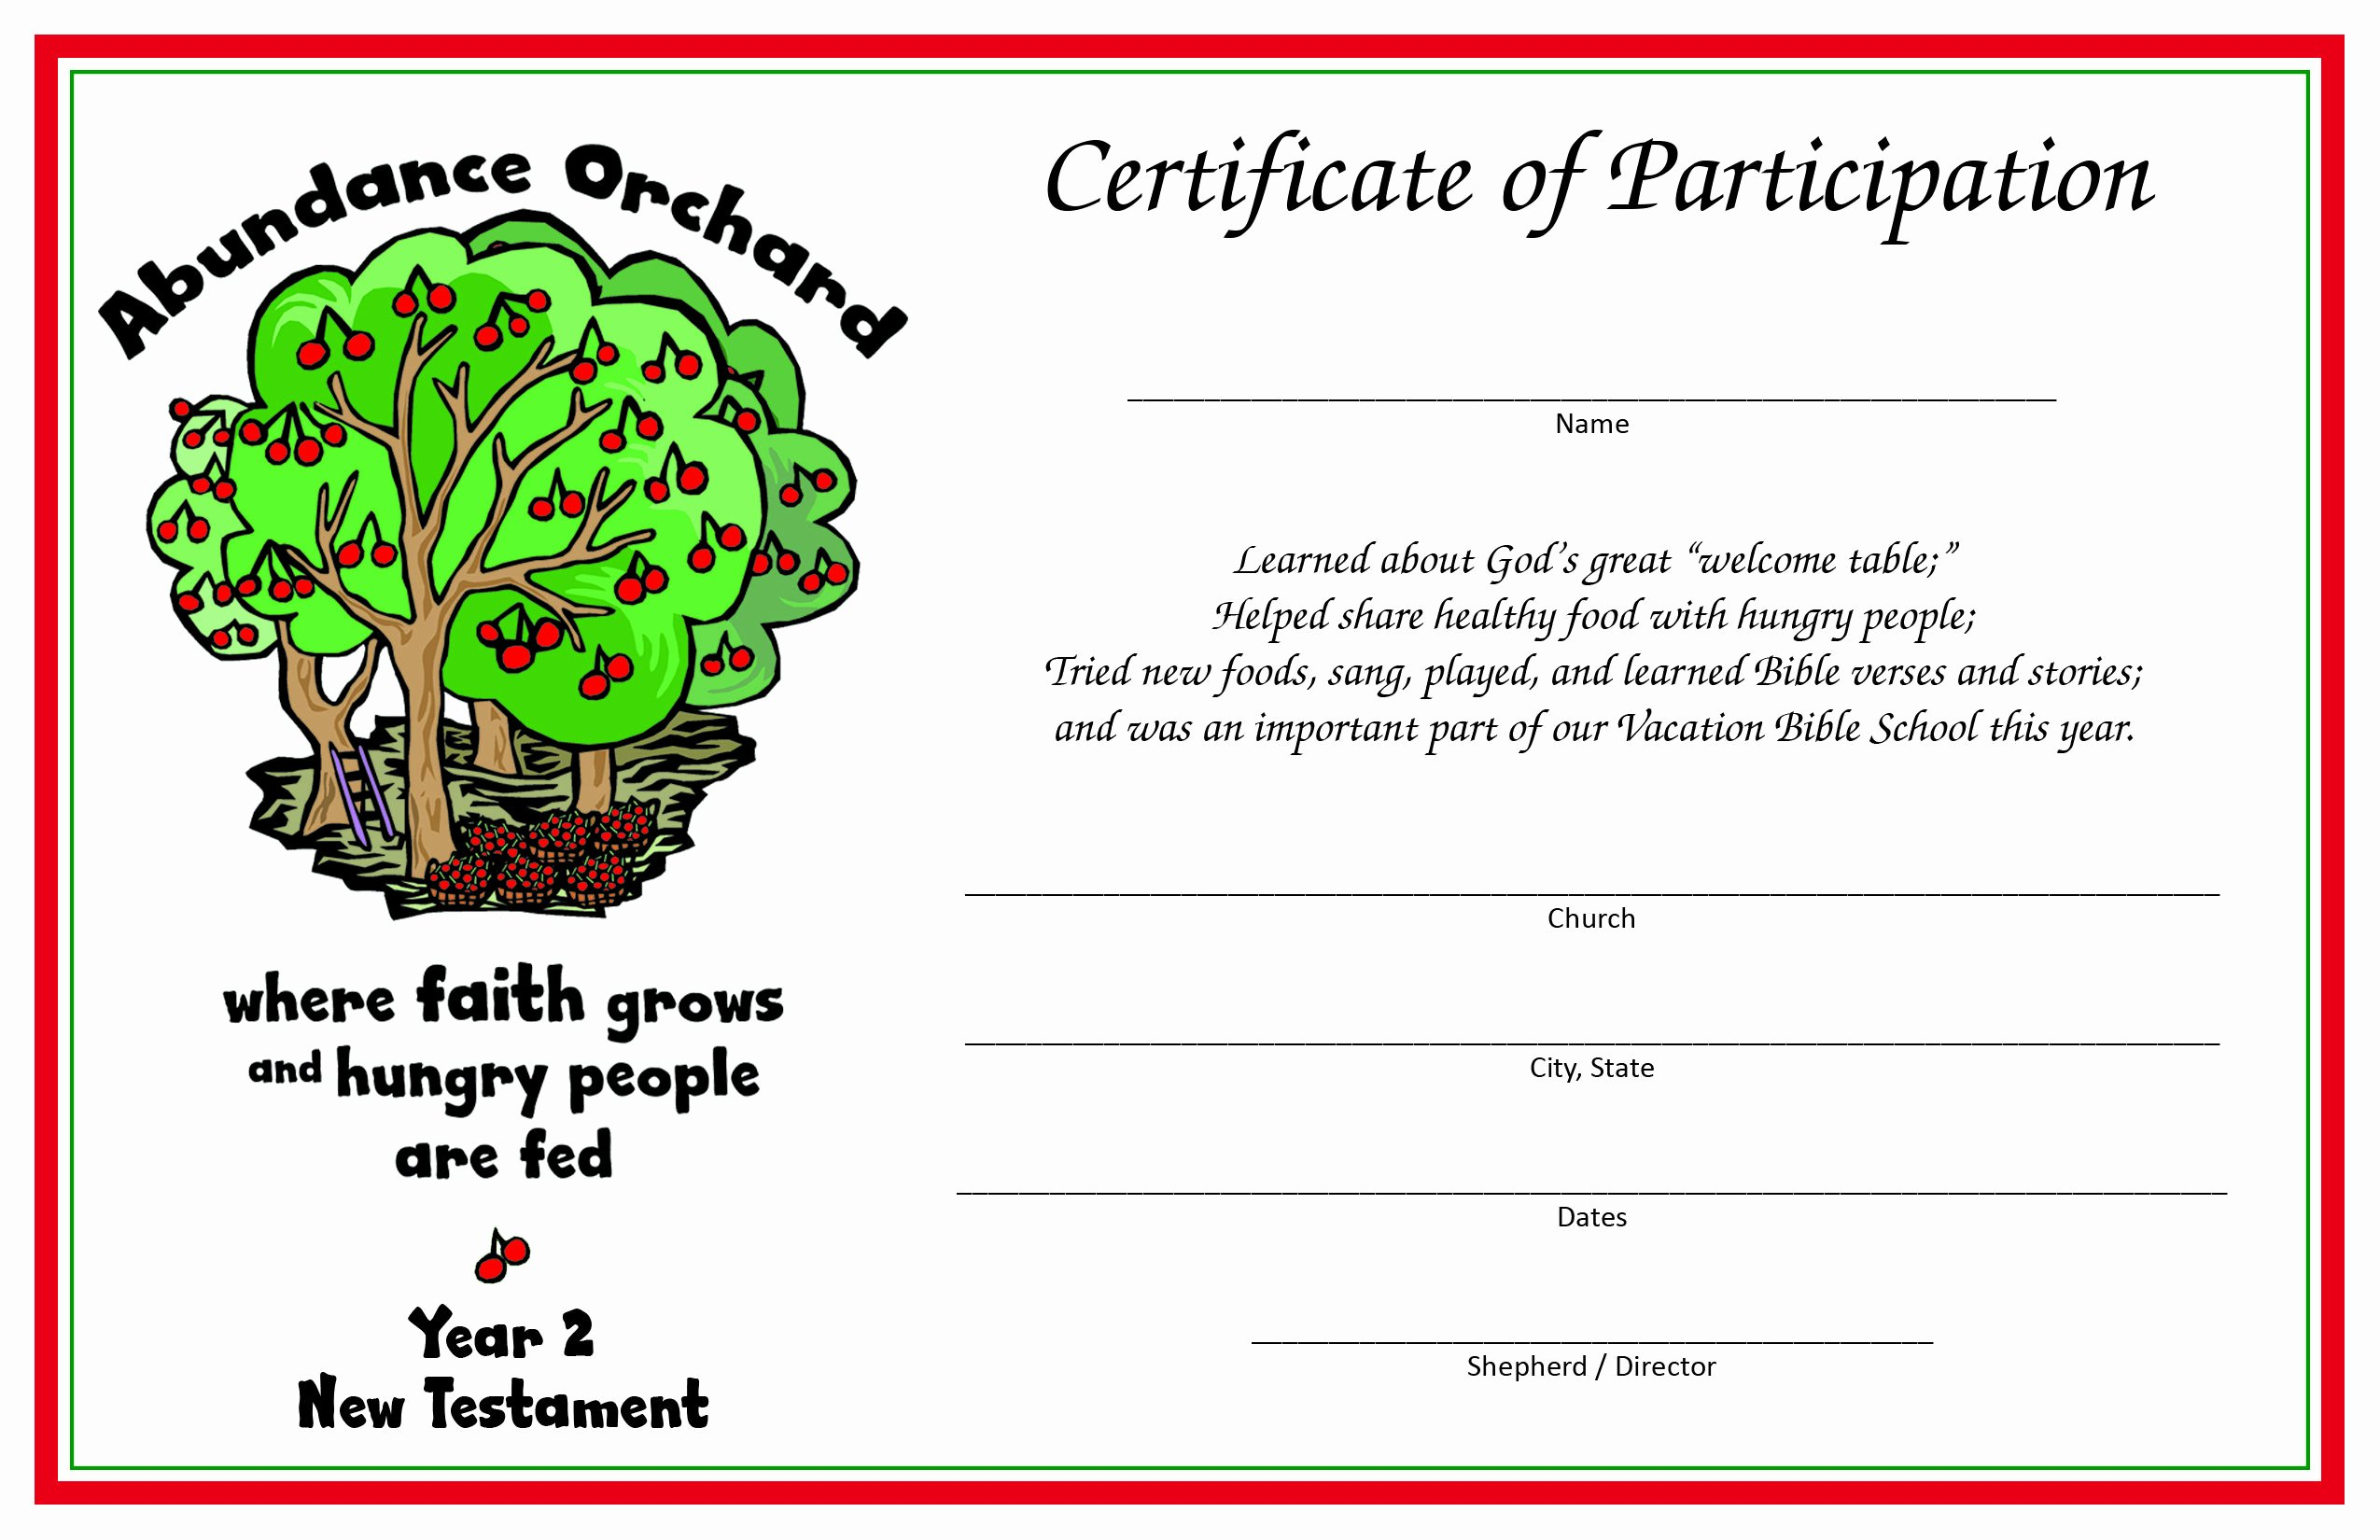 Vacation Bible School Certificates Printable Unique Certificate Of Participation Year 2 New Testament